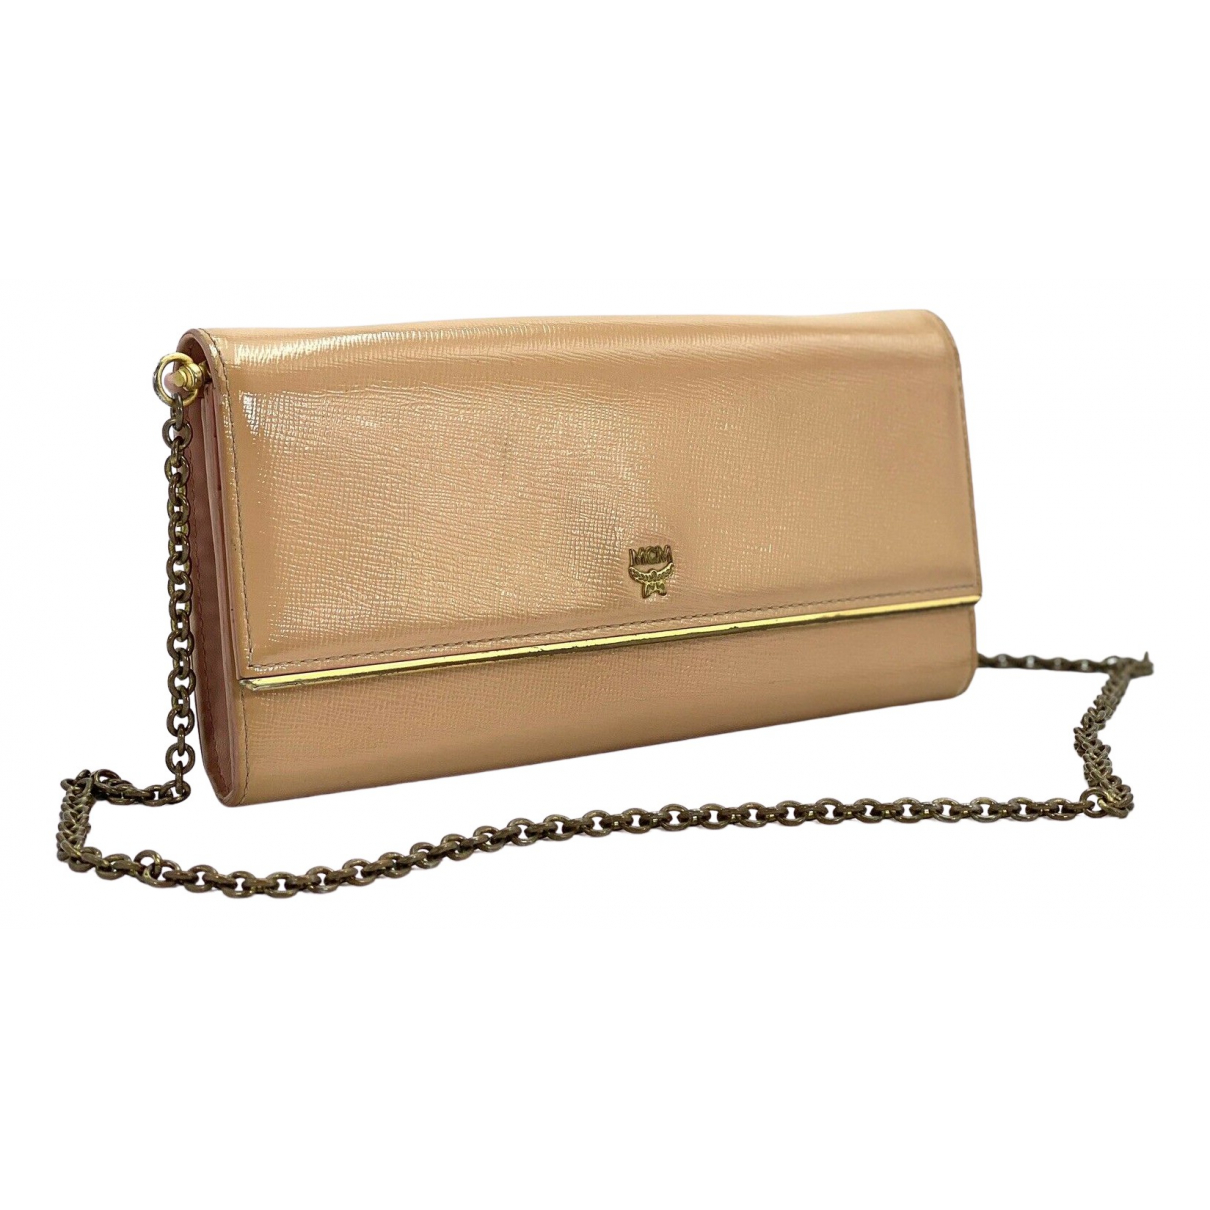 Mcm N Beige Leather Clutch bag for Women N